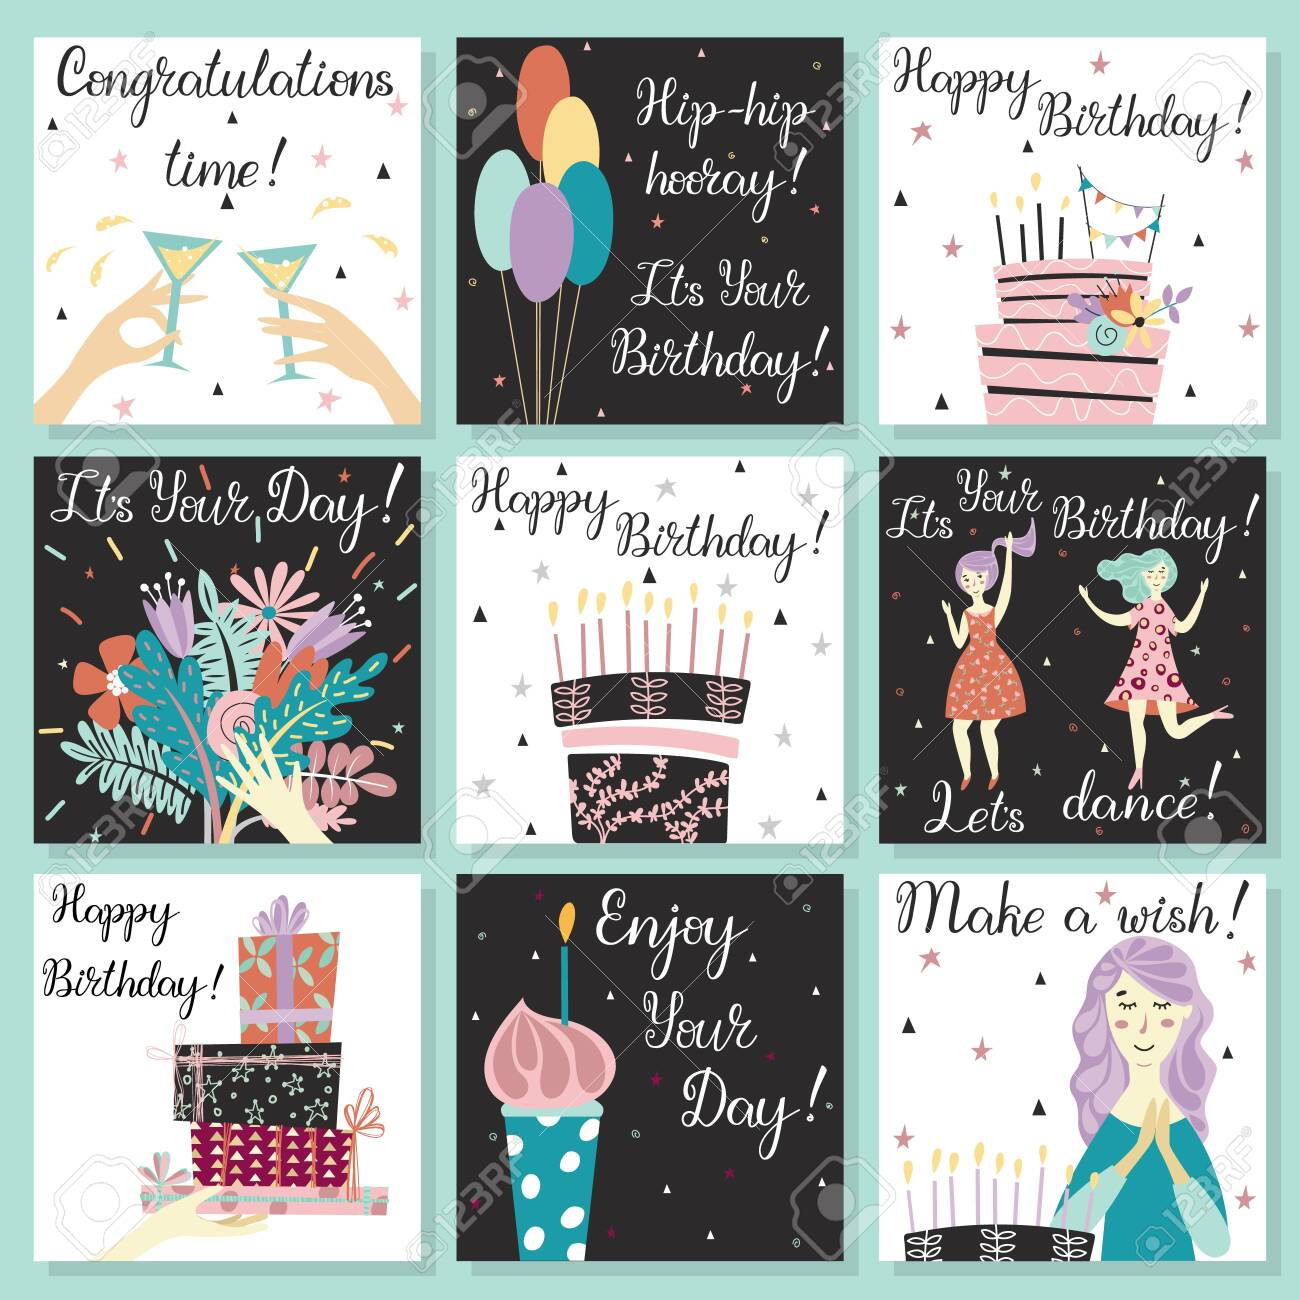 Birthday cards set. Birthday cake with candles and congratulations lettering. Girl making a wish. Hand with gifts and wishes of happiness. Bouquet of flowers in hand. Cupcake with a candle. Two girls dance in dresses at the birthday party. Glasses with a drink. Baloons. Birthday cake. - 122779027